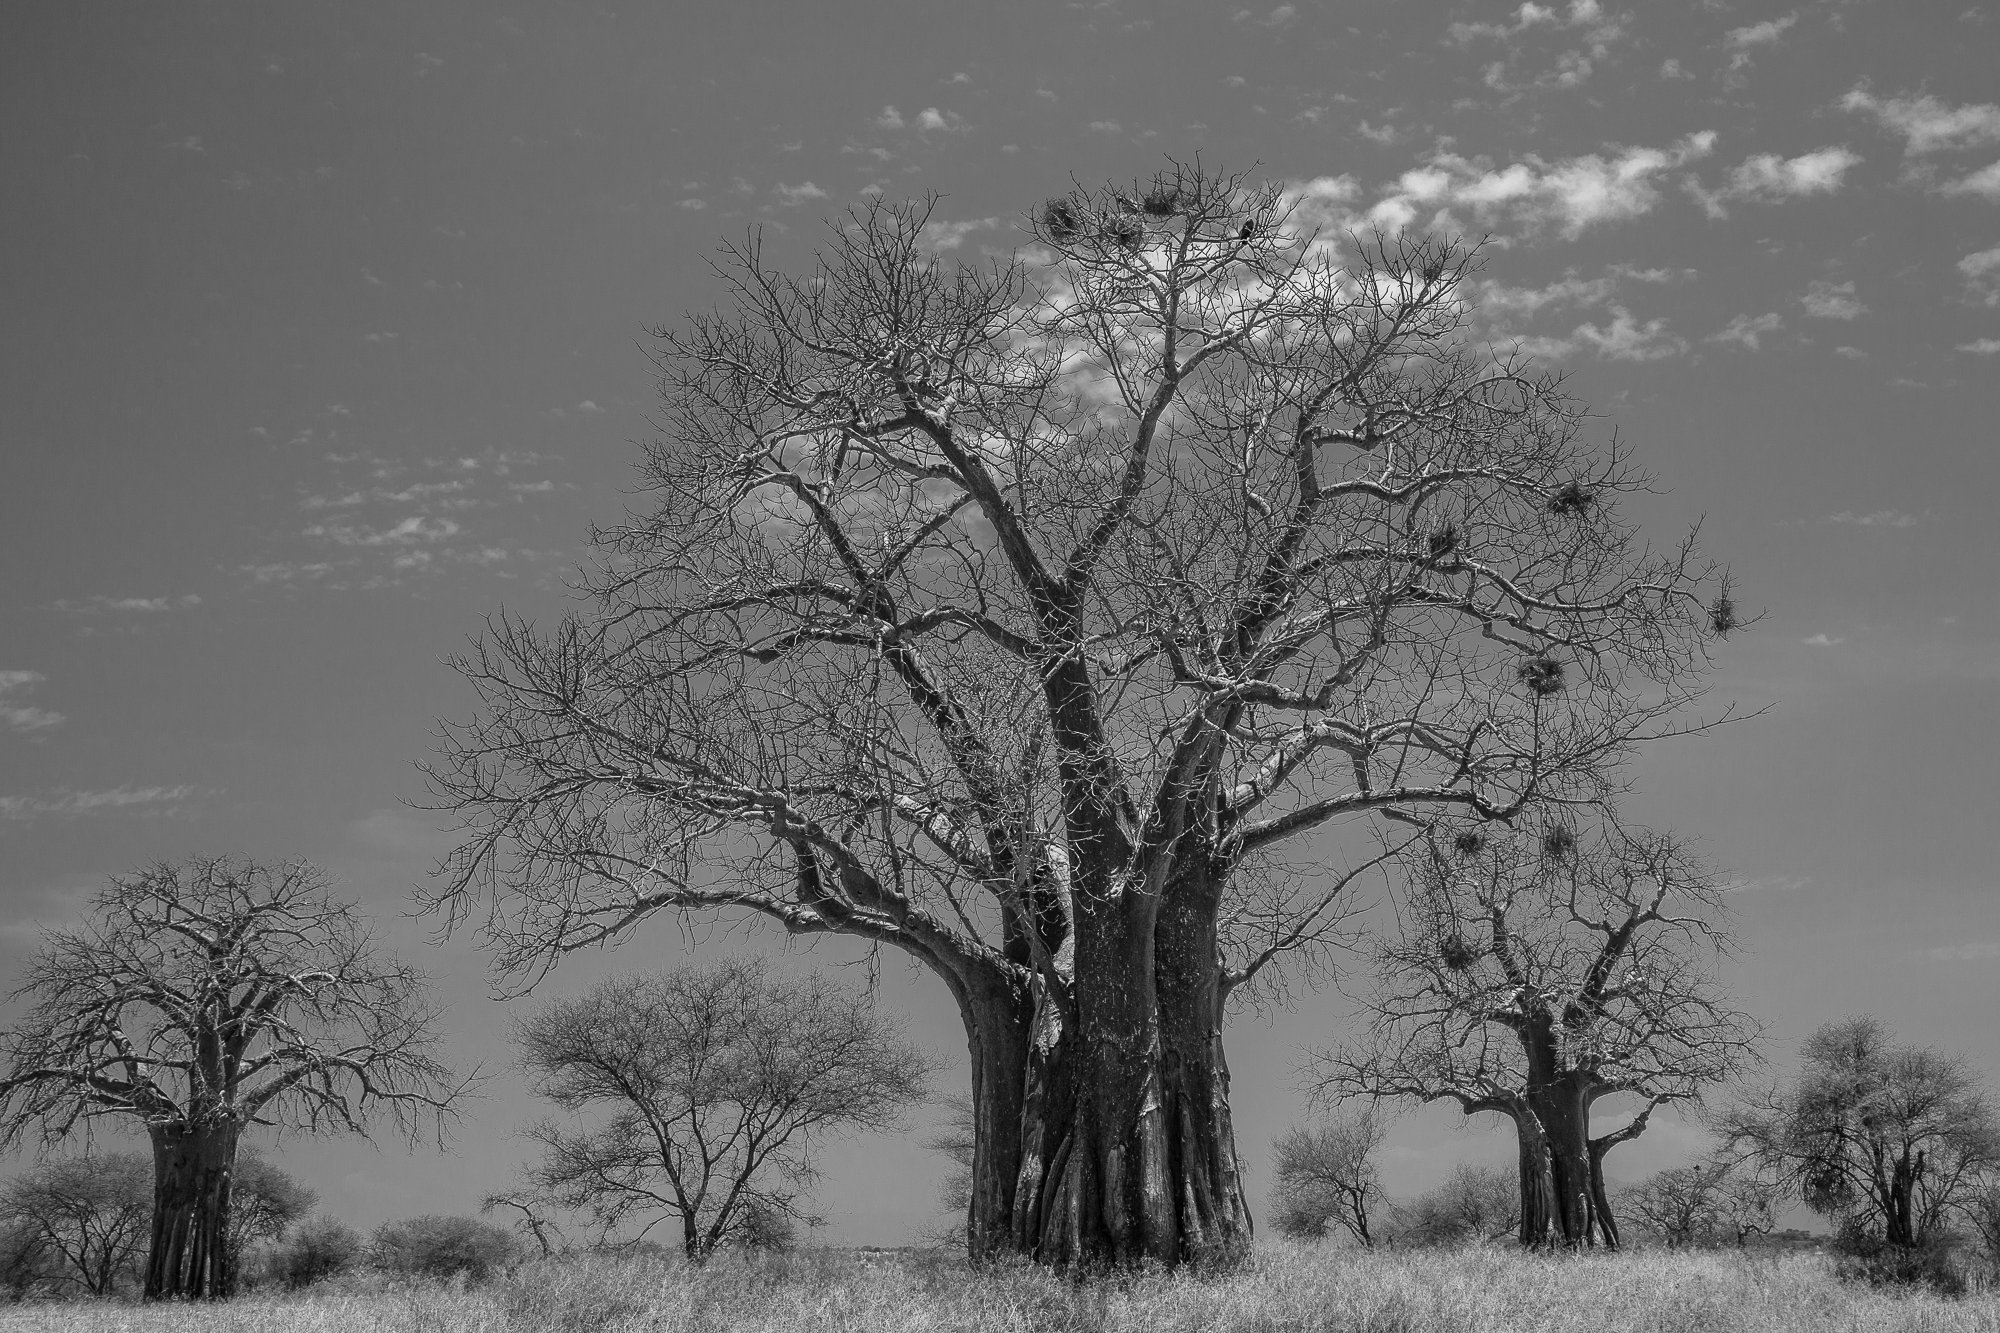 A baobab tree hosts a vulture, an eagle and stands proud in Tarangire Park, Tanzania